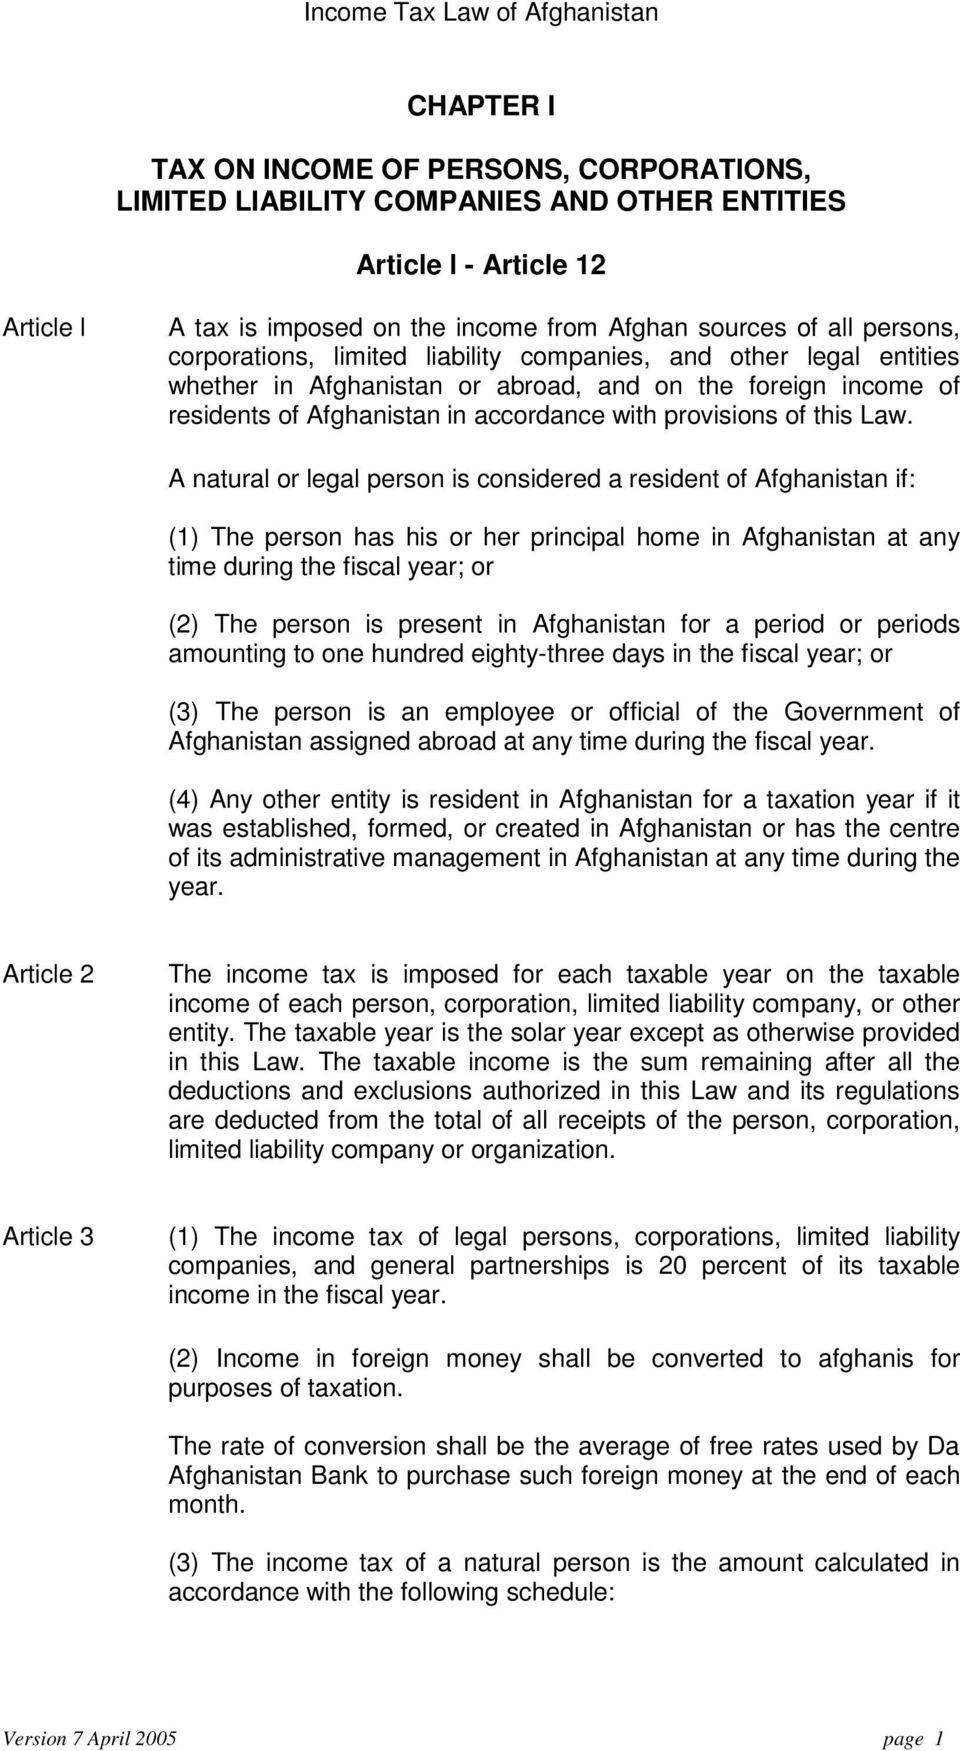 A natural or legal person is considered a resident of Afghanistan if: (1) The person has his or her principal home in Afghanistan at any time during the fiscal year; or (2) The person is present in